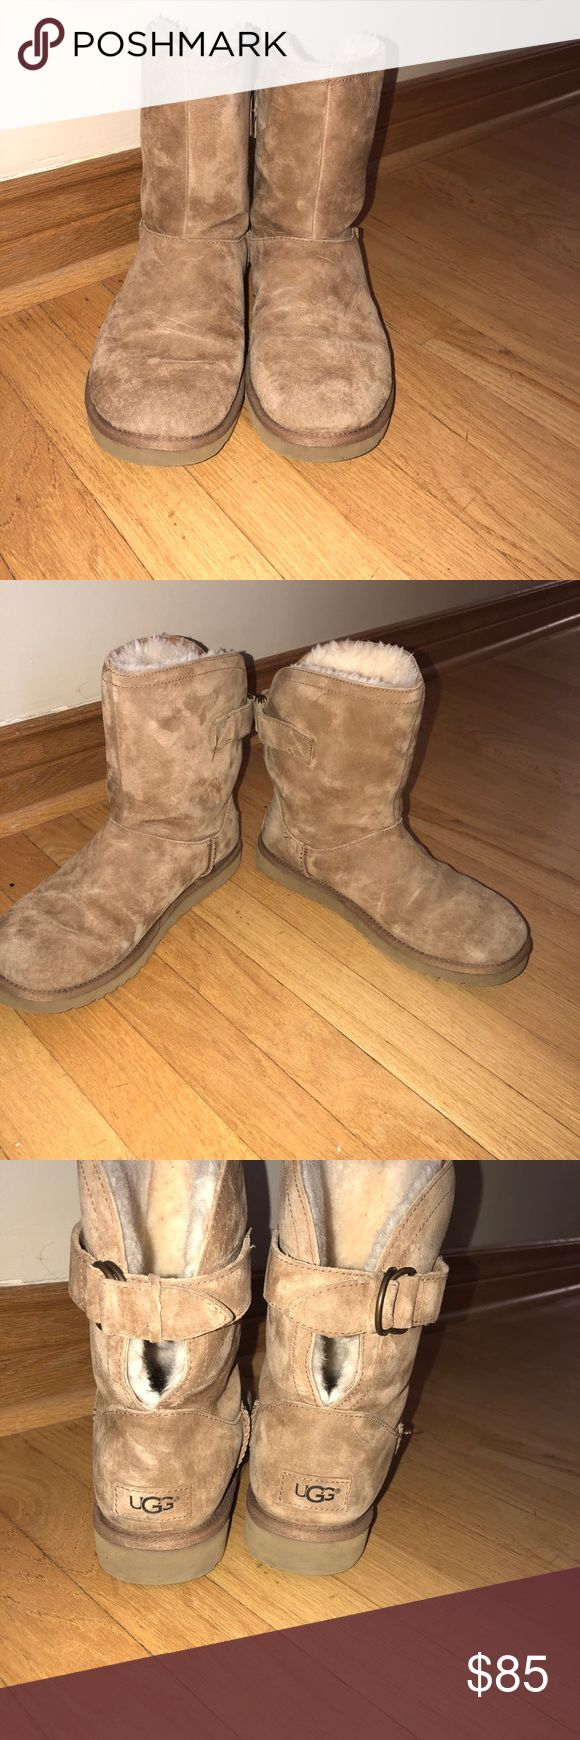 Remora Buckle Chestnut Ugg Worn a few times, no sign of damage. Without a box UGG Shoes Winter & Rain Boots